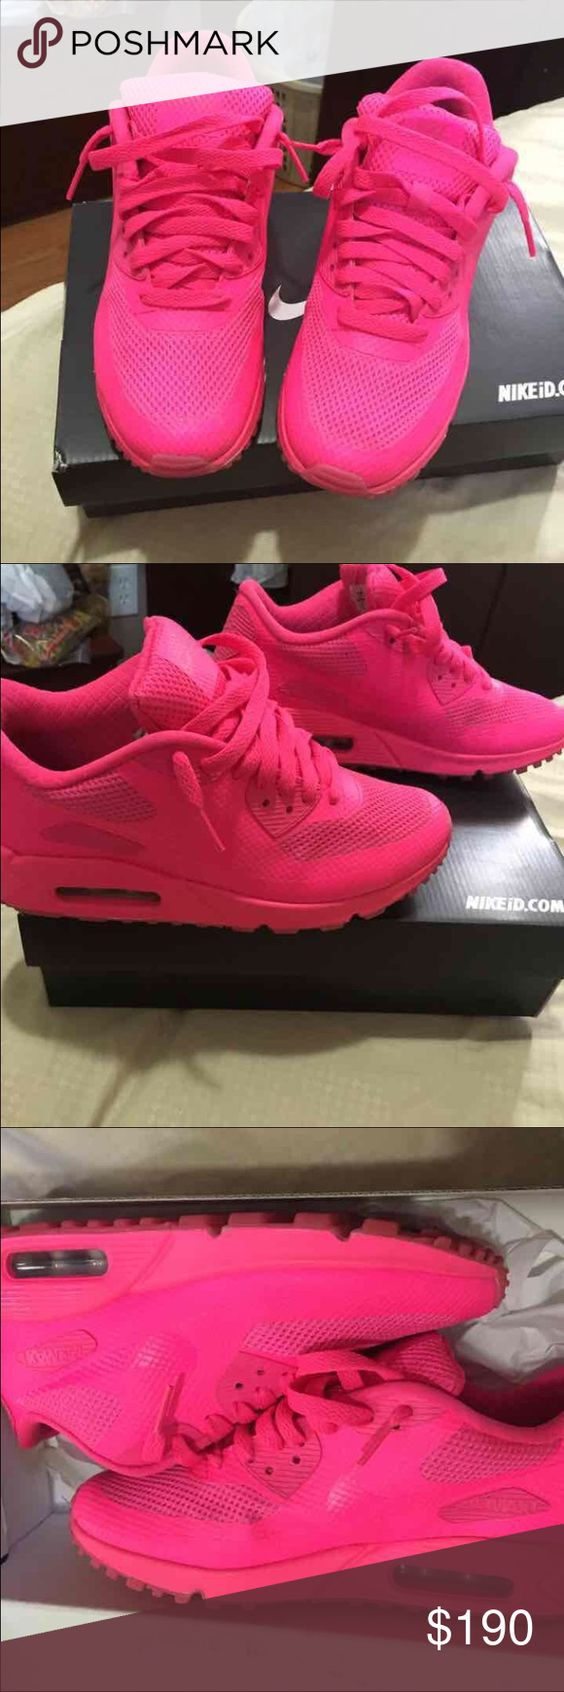 Air Max 90 pink air max 90.. NikeID Size 5y Nike Shoes Sneakers